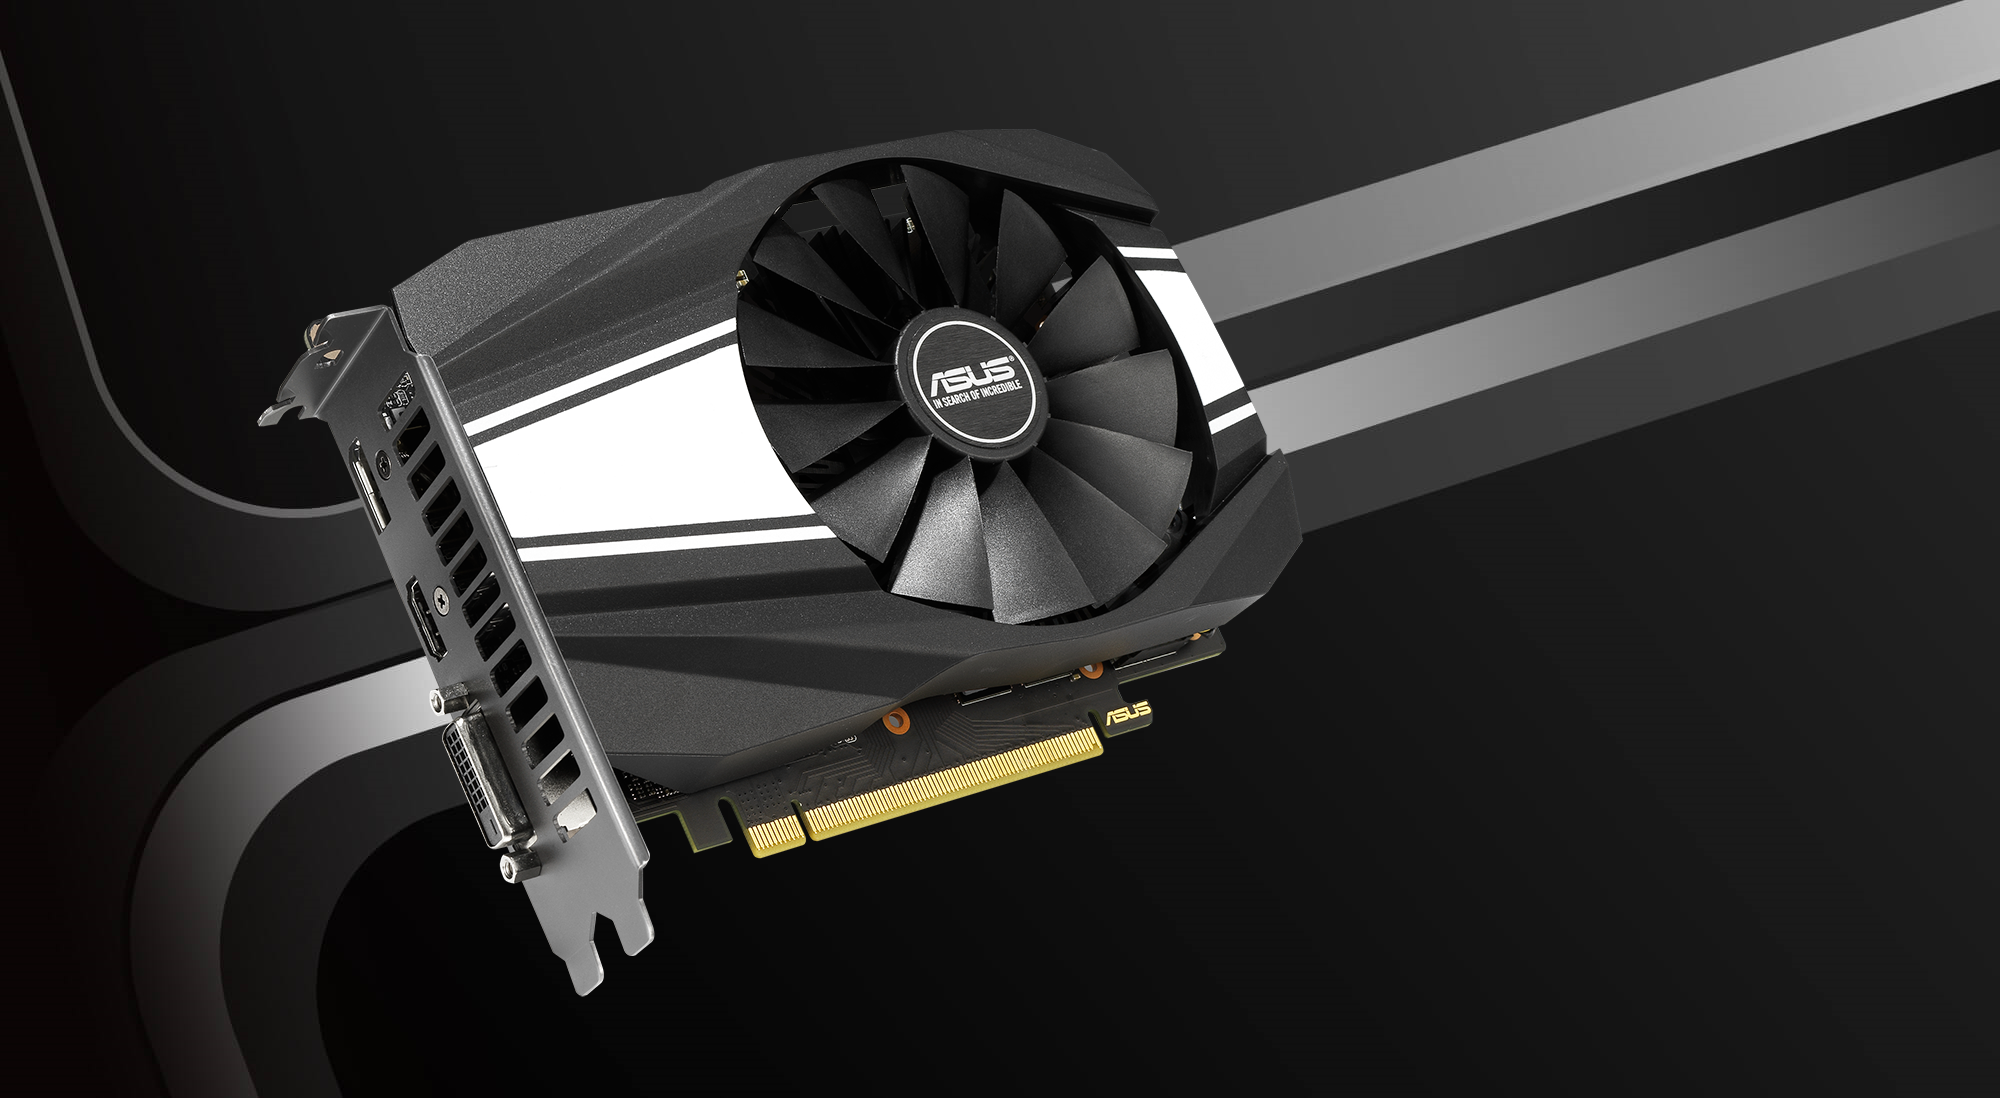 Asus NVIDIA GeForce GTX 1660 PCIe 3 0 Overclocked Graphics Card, 6GB GDDR5